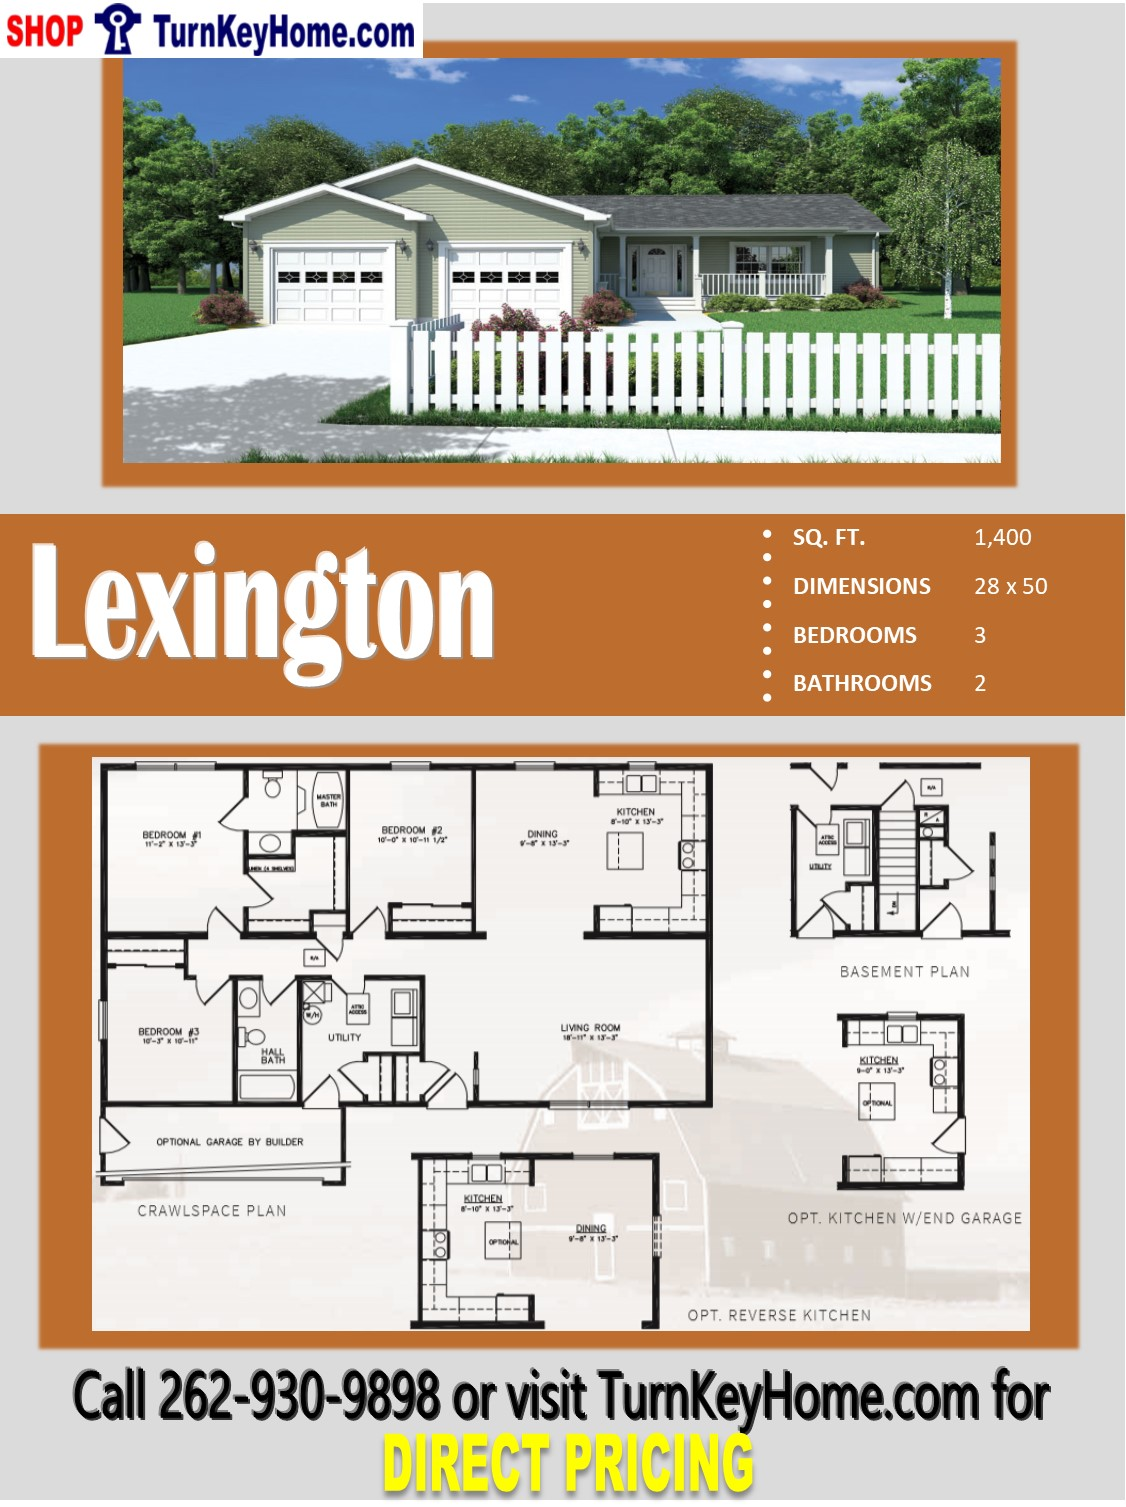 Lexington ranch style home 3 bed 2 bath plan 1400 sf for Direct from the designers house plans